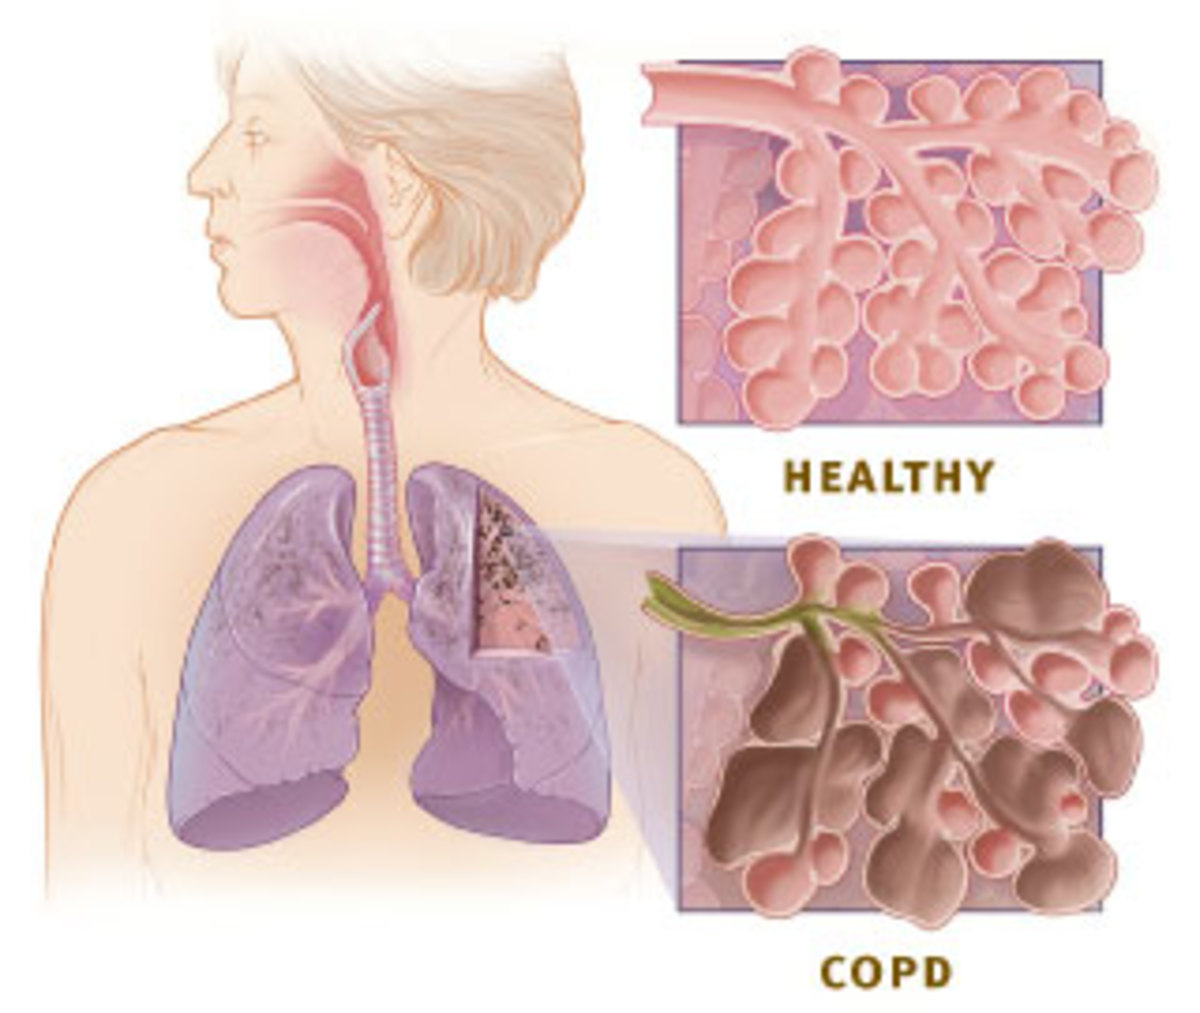 Diagram comparing a COPD lung to a healthy lung. COPD is a common result of smoking cigarettes.